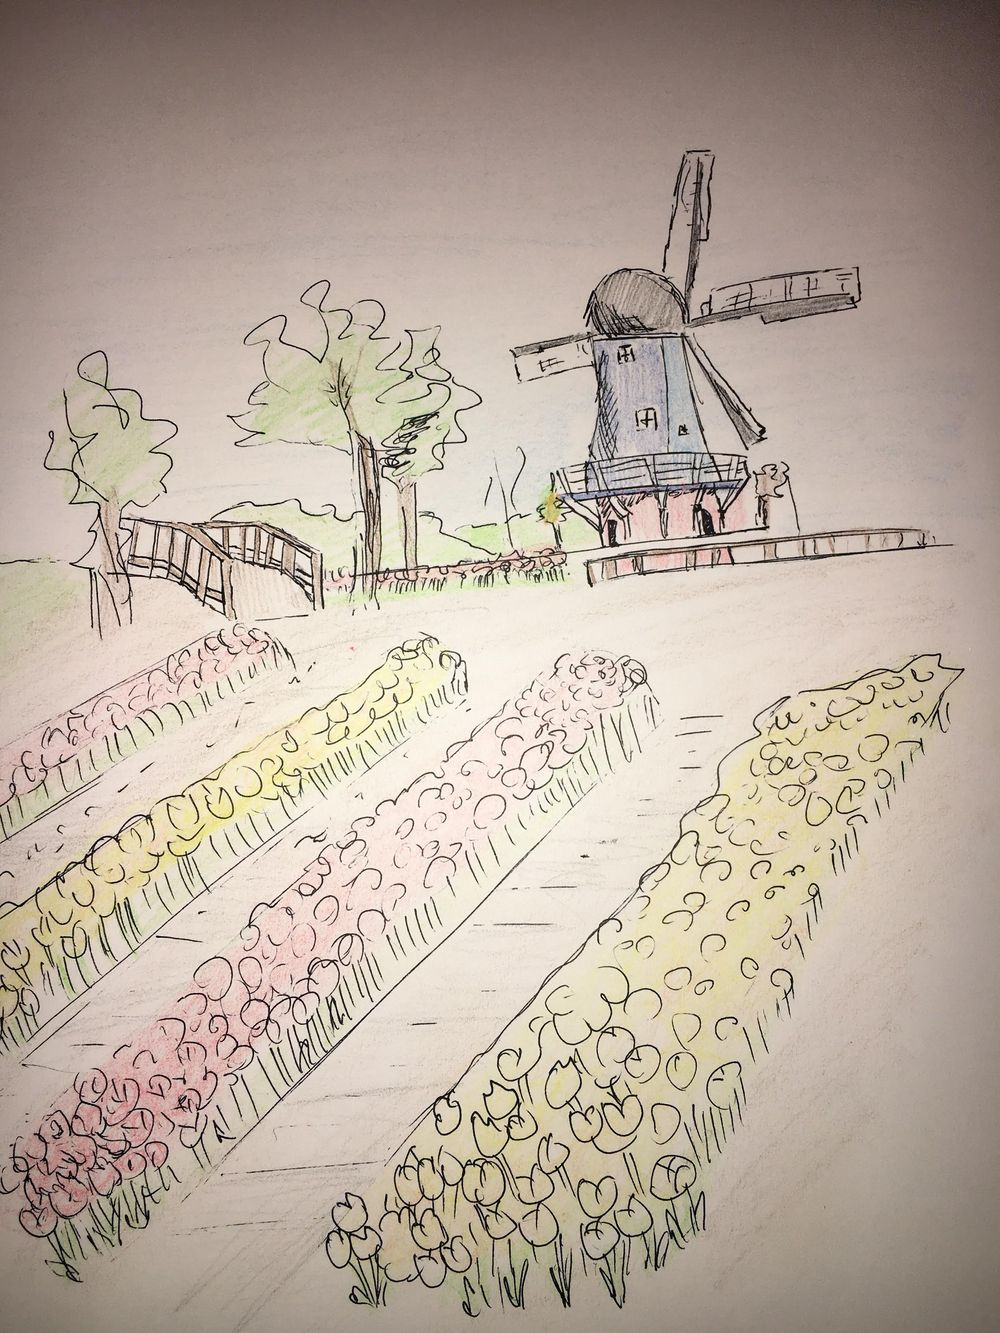 Sketch of the tulip festival in Holland, MI - image 1 - student project